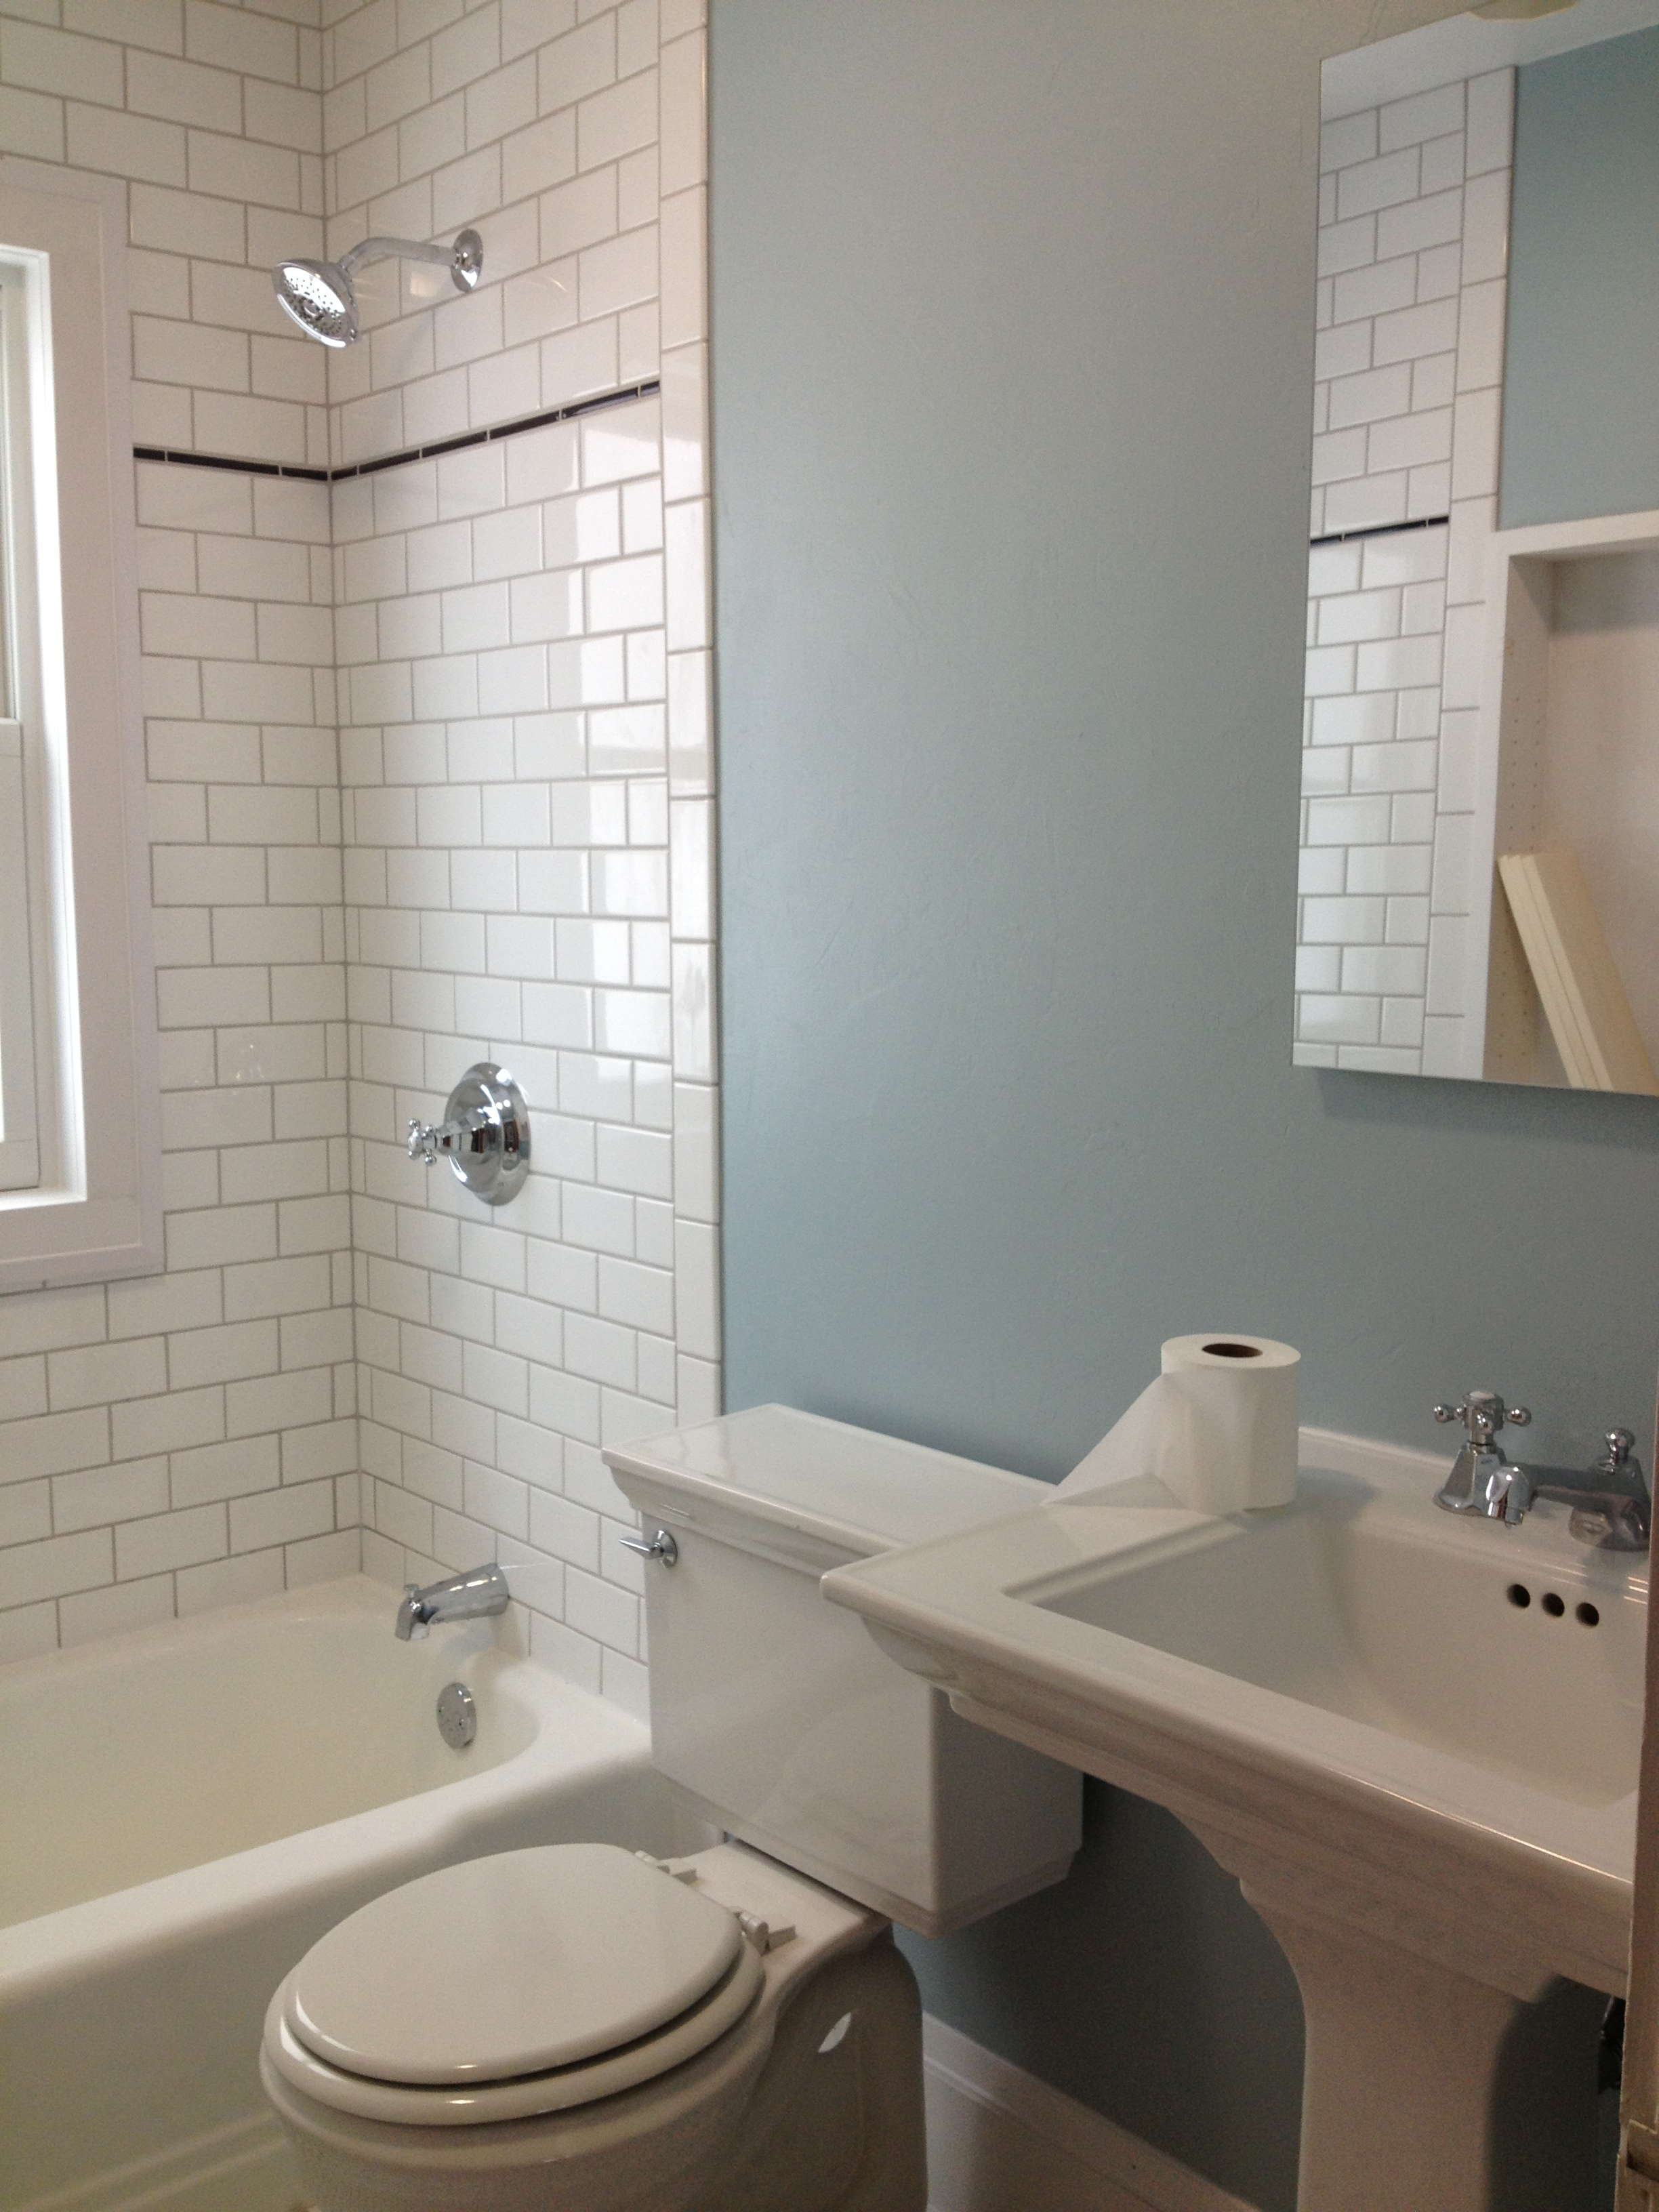 old fashioned bathroom - eric's custom carpentry